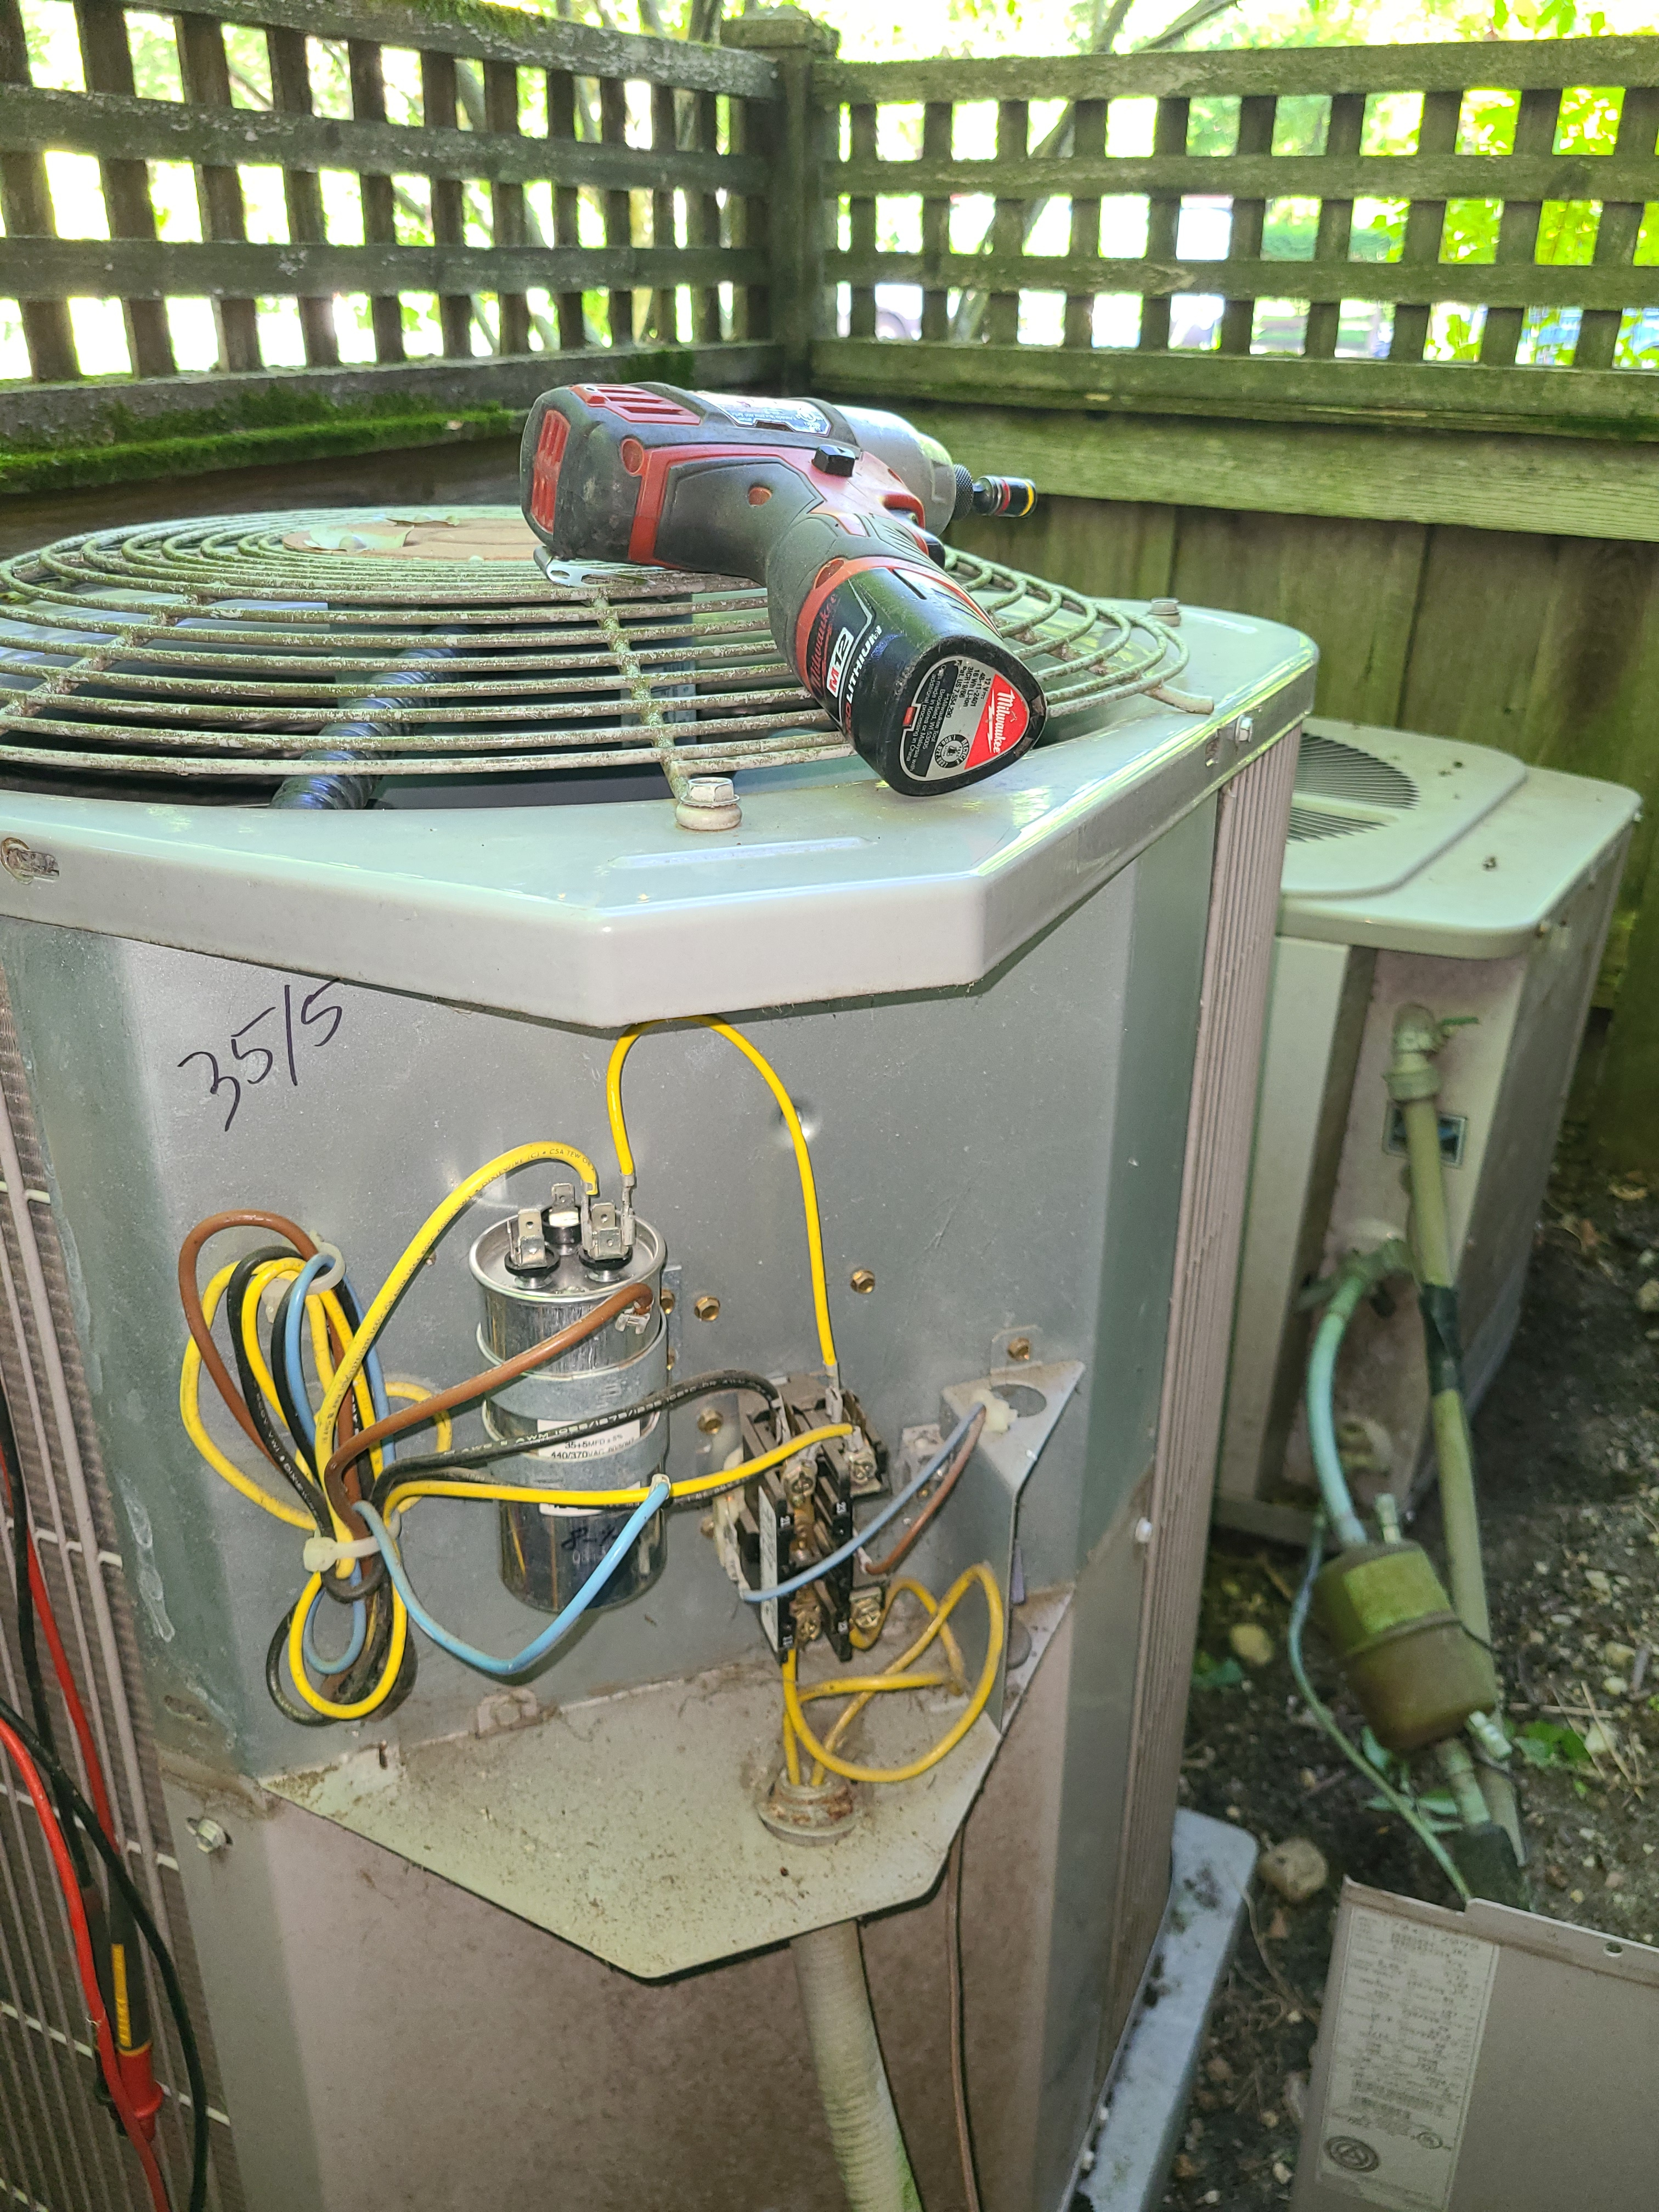 2x Carrier air conditioning system cleaned and checked. Ready for summer!